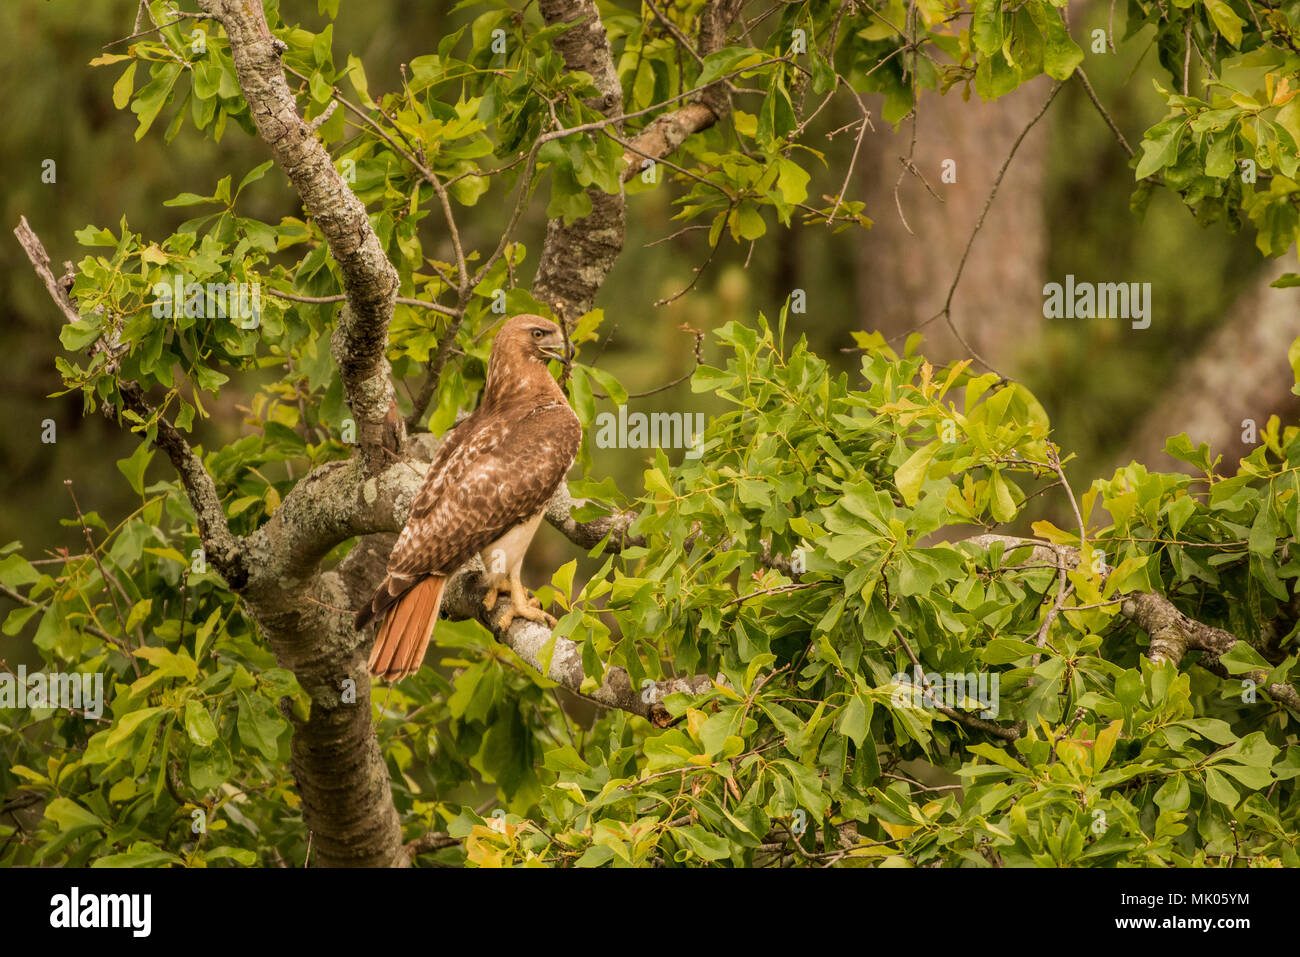 A red tailed hawk (Buteo jamaicensis) sitting in the tree tops holding a stick that it will later use to construct its nest. - Stock Image